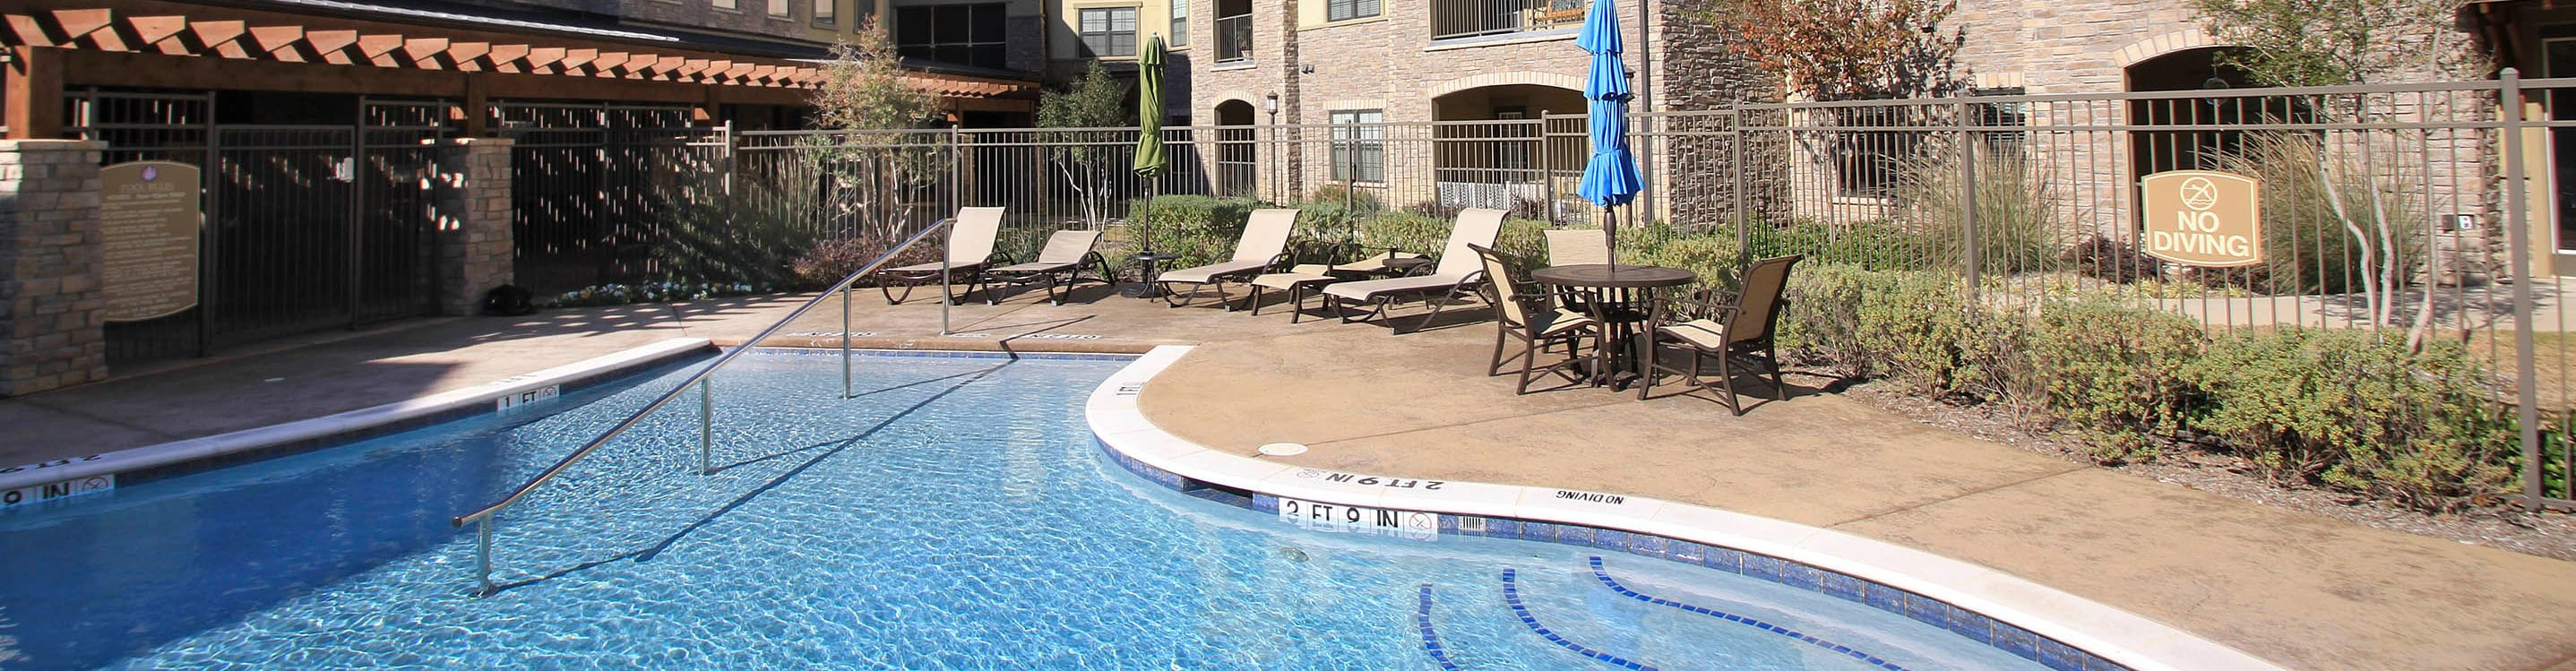 Senior living community in Allen, TX